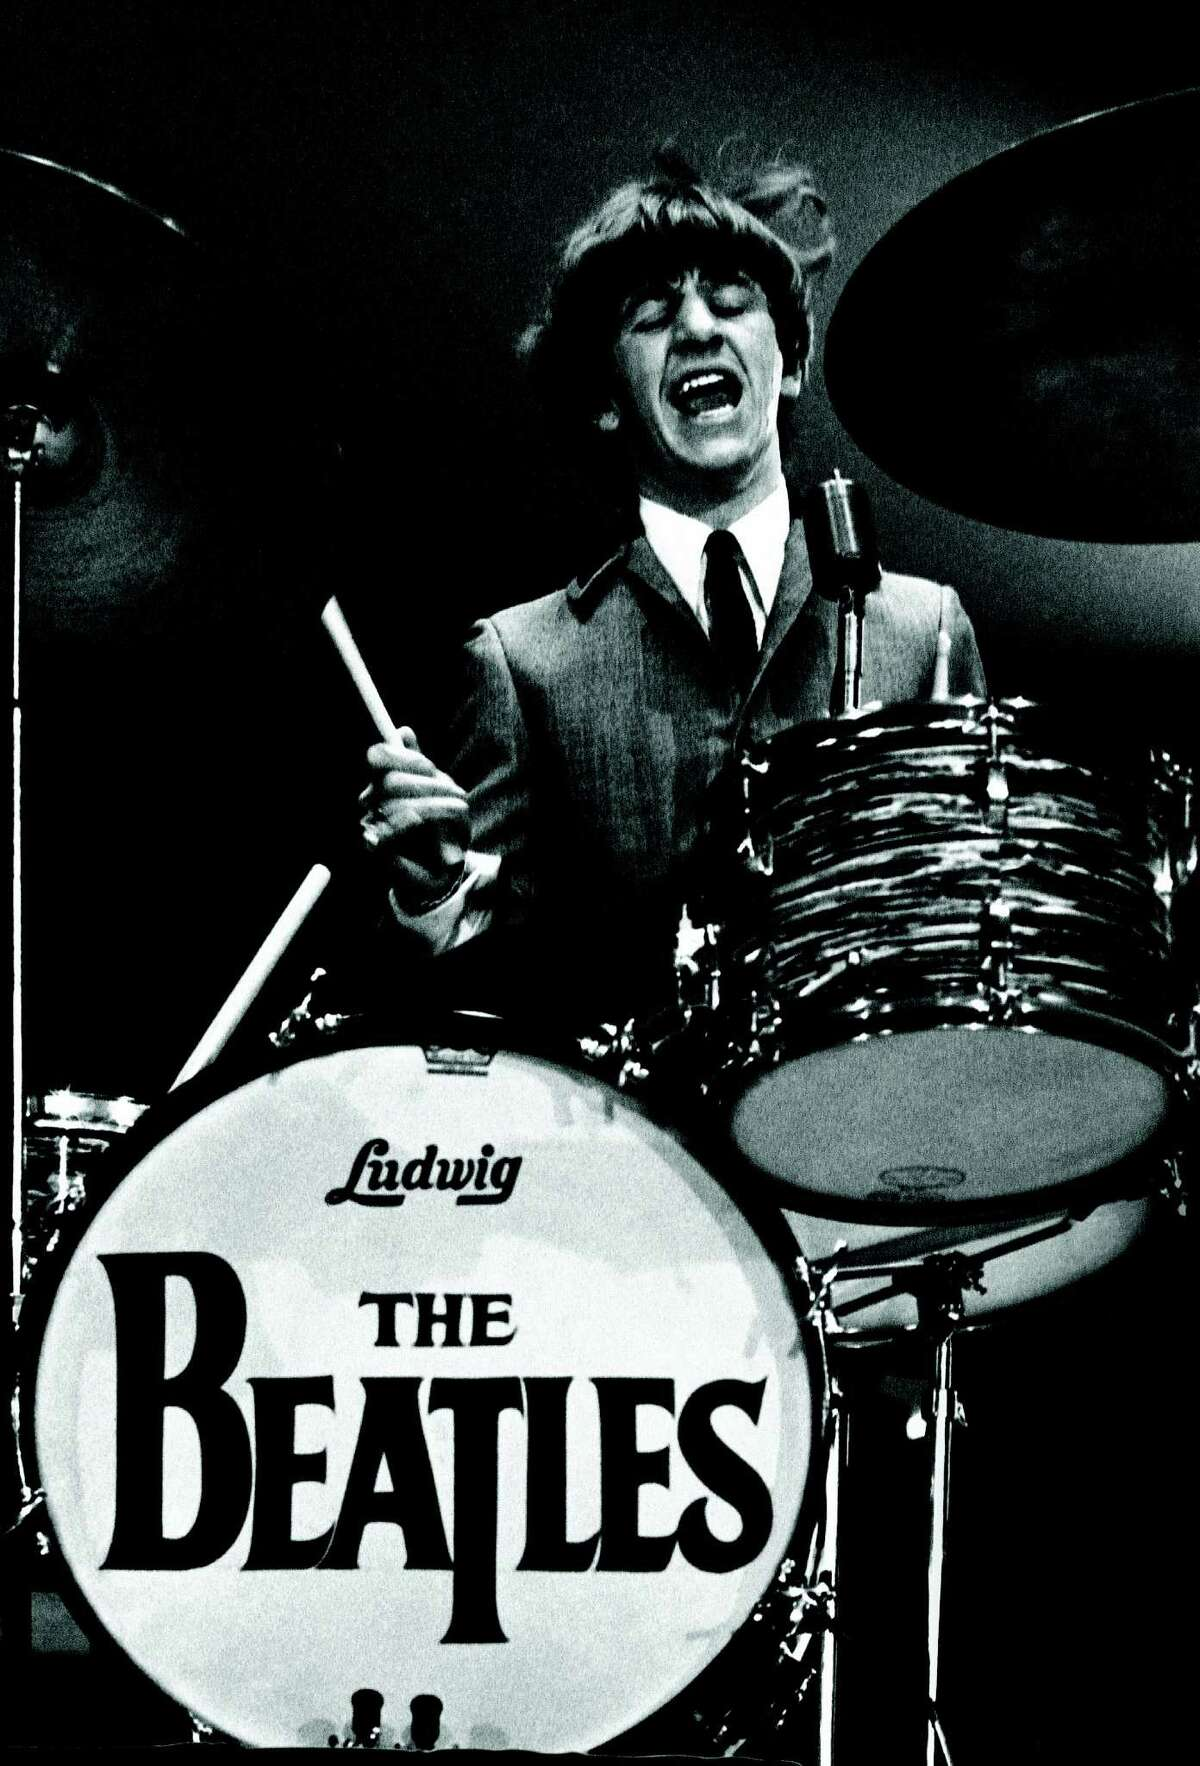 This Feb. 11, 1964 image provided by the David Anthony Fine Art gallery in Taos, N.M., shows a photograph of Ringo Starr taken by photographer Mike Mitchell during the Beatles first live U.S. concert at the Washington Coliseum. Mitchell?'s portraits of the Beatles are the centerpiece of a monthlong photography exhibition at the gallery. This marks the first time the images have been shown since their unveiling in 2011 at a Christie?'s auction in New York City. (AP Photo/David Anthony Fine Art, Mike Mitchell) ORG XMIT: AQ105